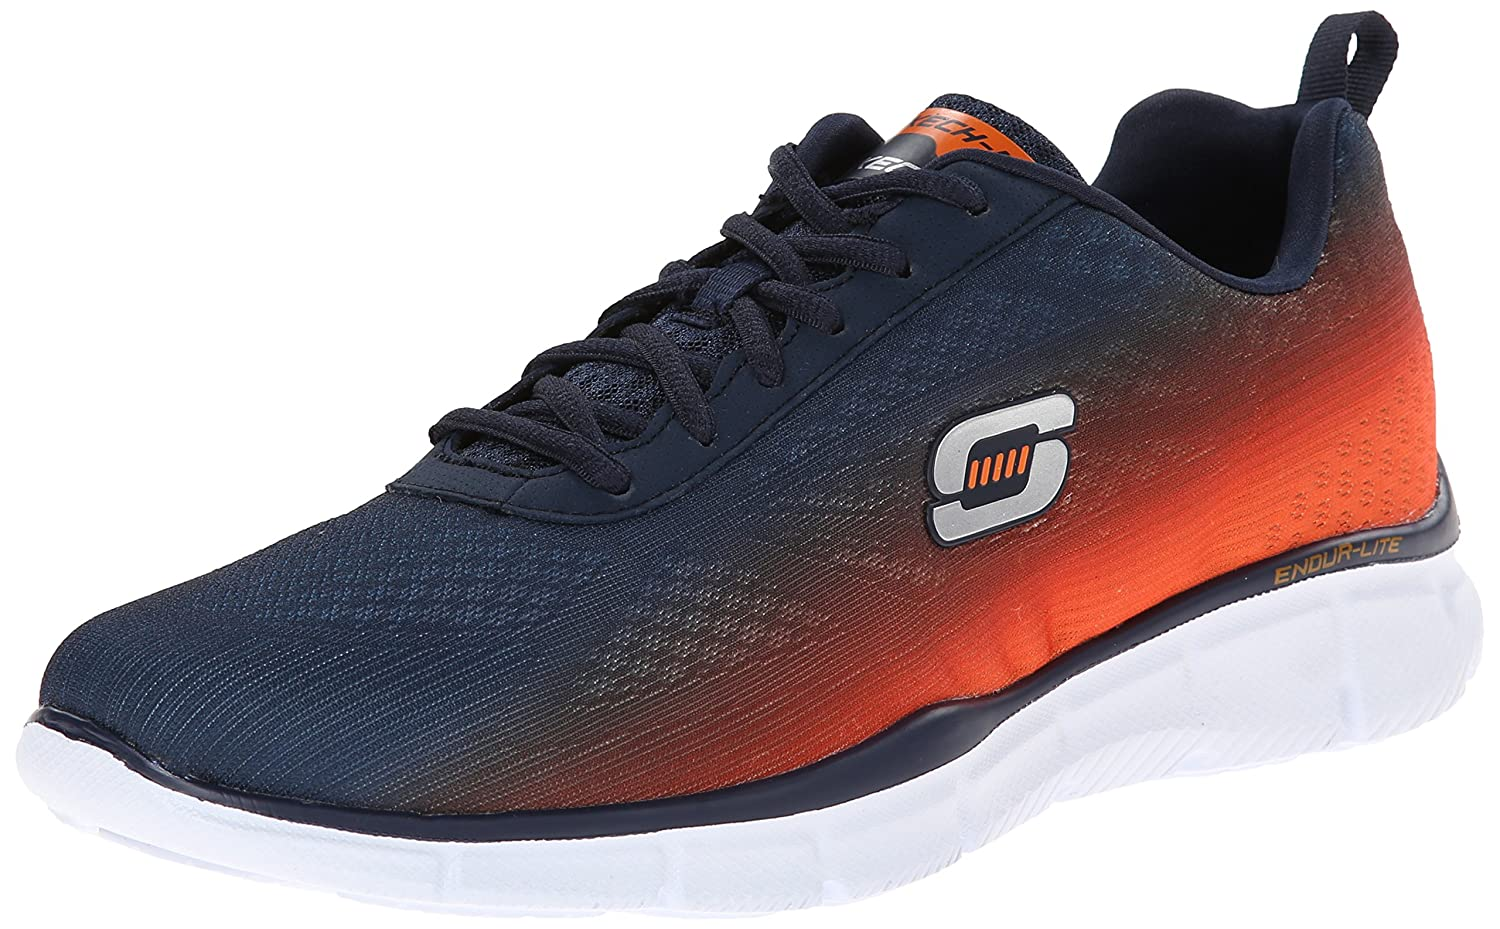 Skechers Equalizer 2.0 Settle The Score, Sneakers Basses Homme, Black (Bkgy - Black Grey), 46